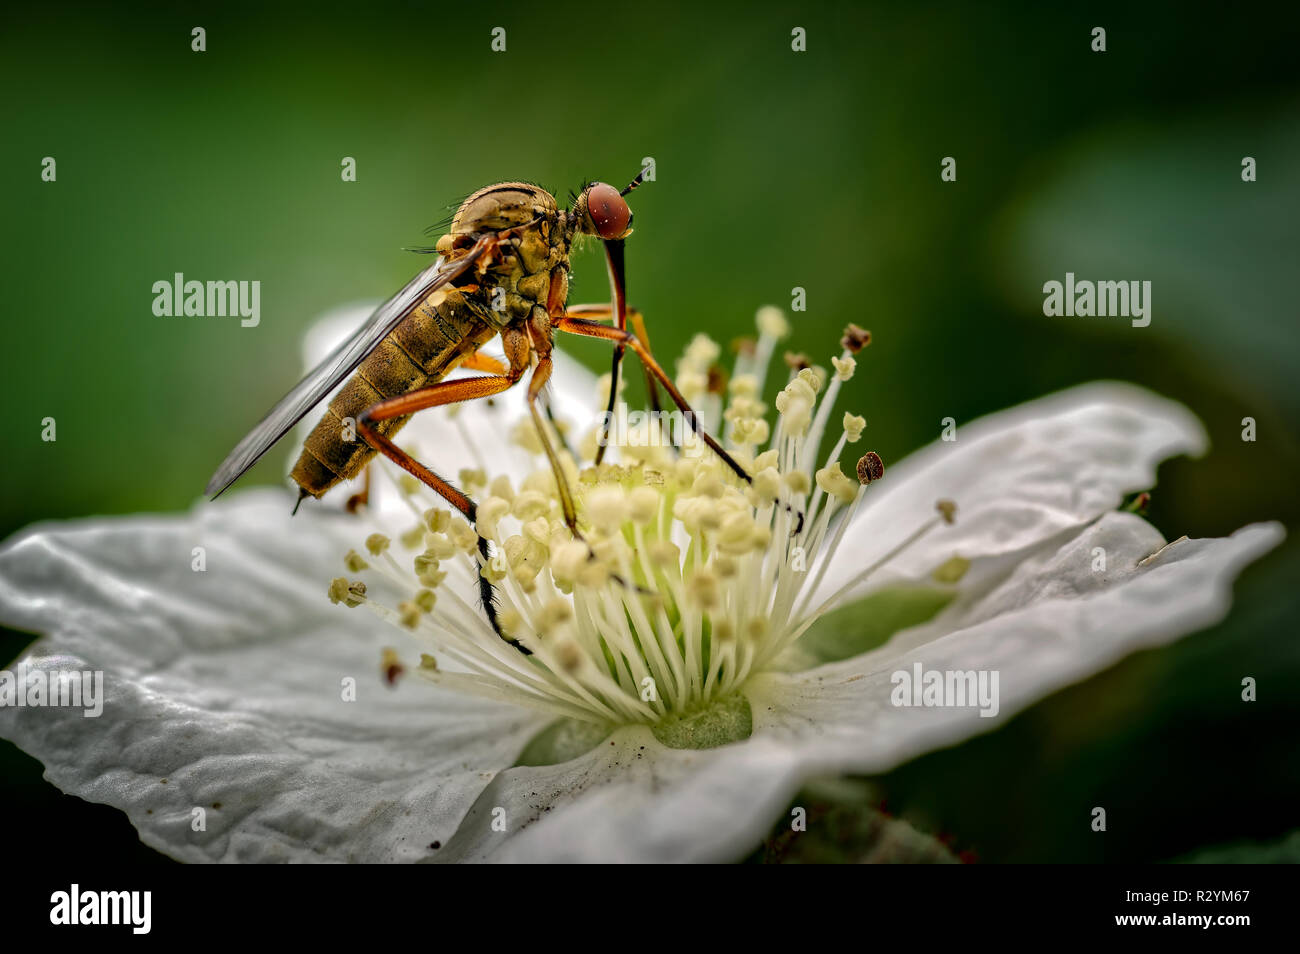 The Dagger Fly seen here is Empis opaca nectaring (feeding) on a dewberry flower. These flies are common throughout Europe except the peninsulas of th - Stock Image